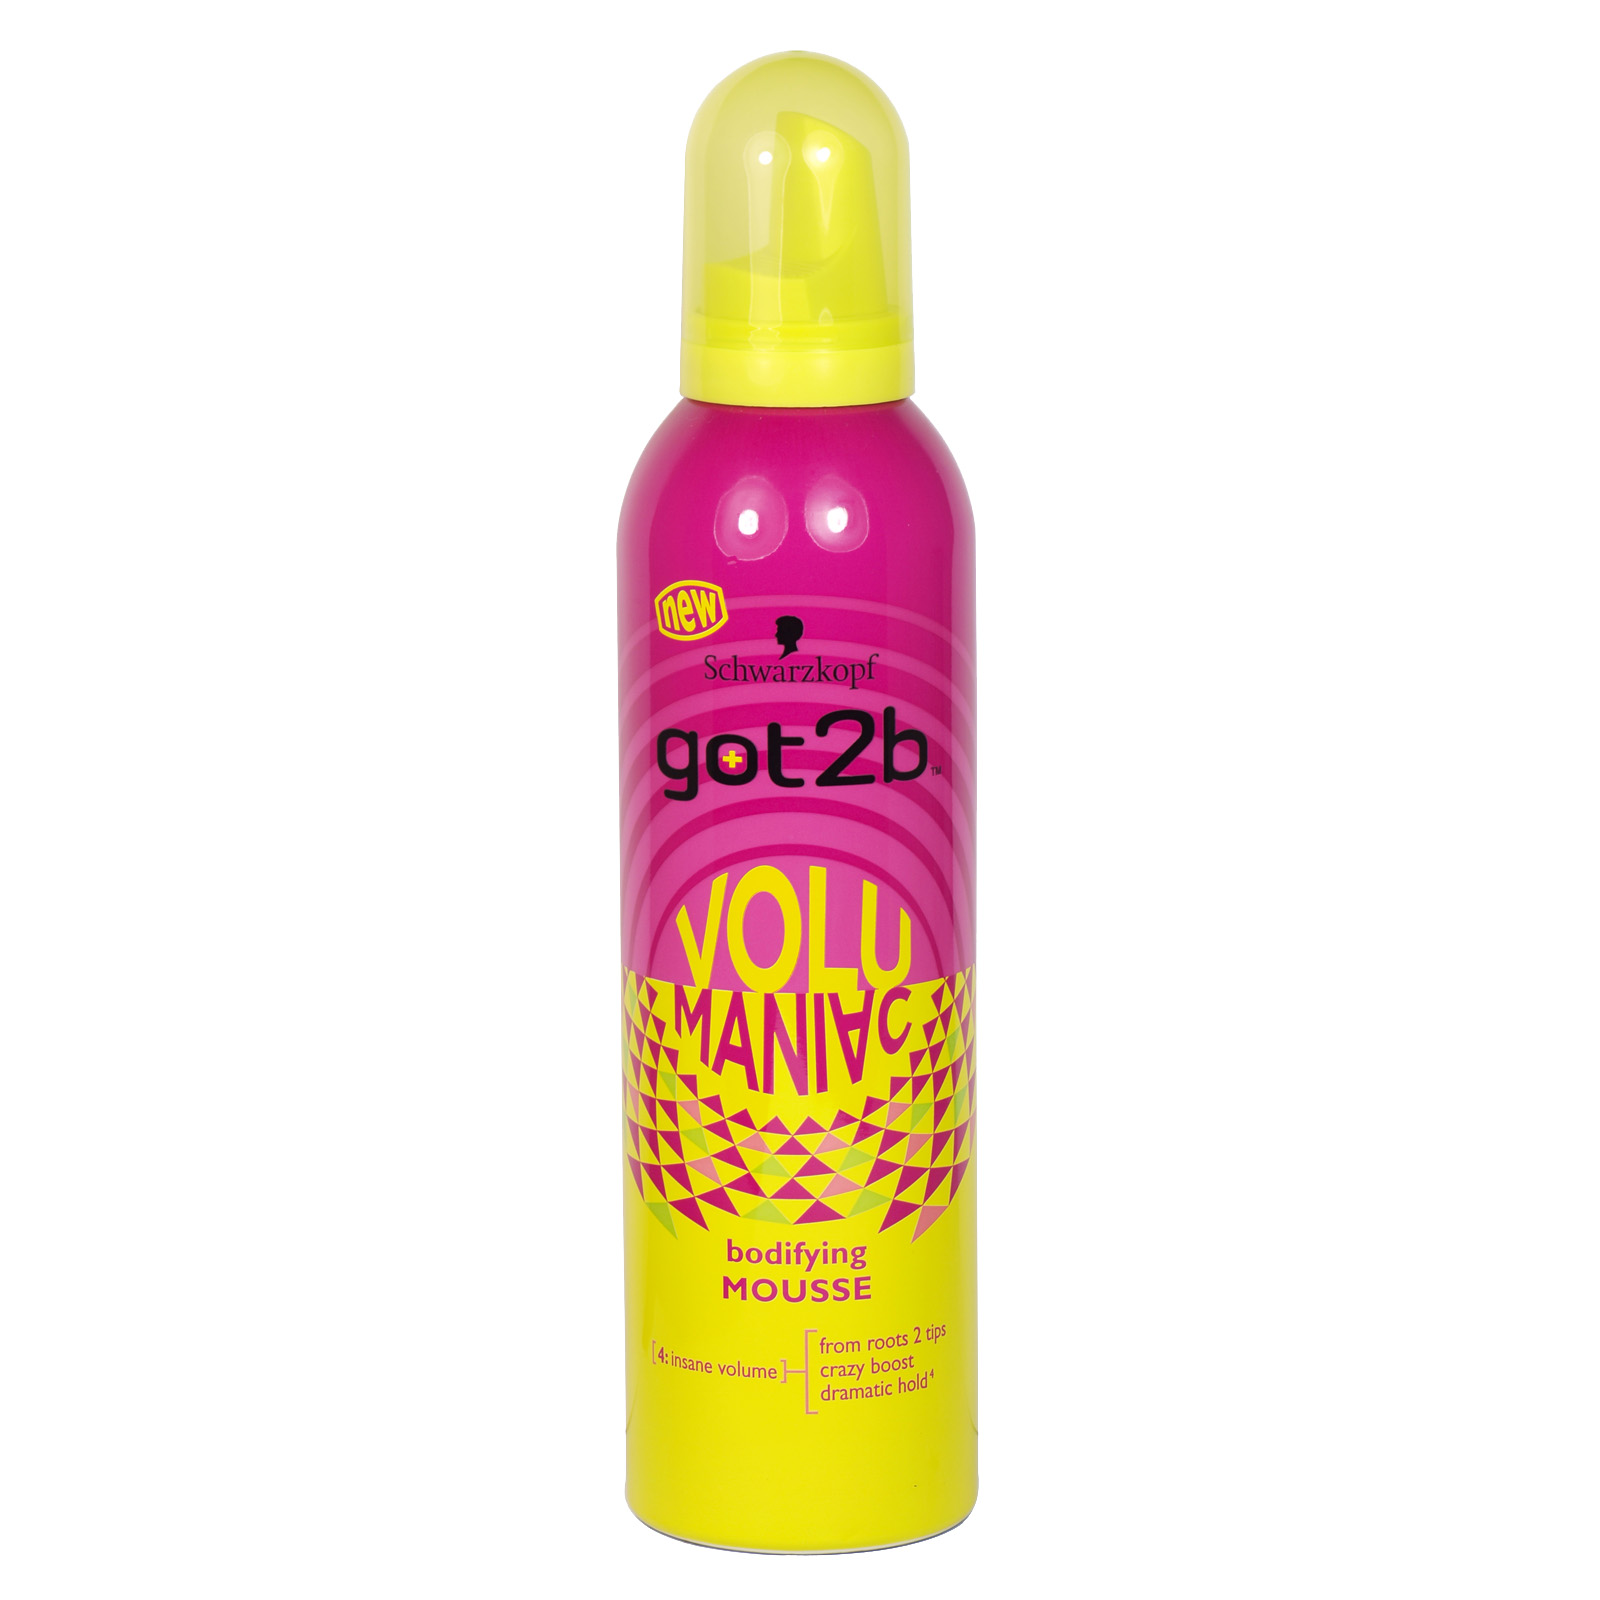 GOT 2B VOLUMANIAC BODIFYING MOUSSE 250ML X6